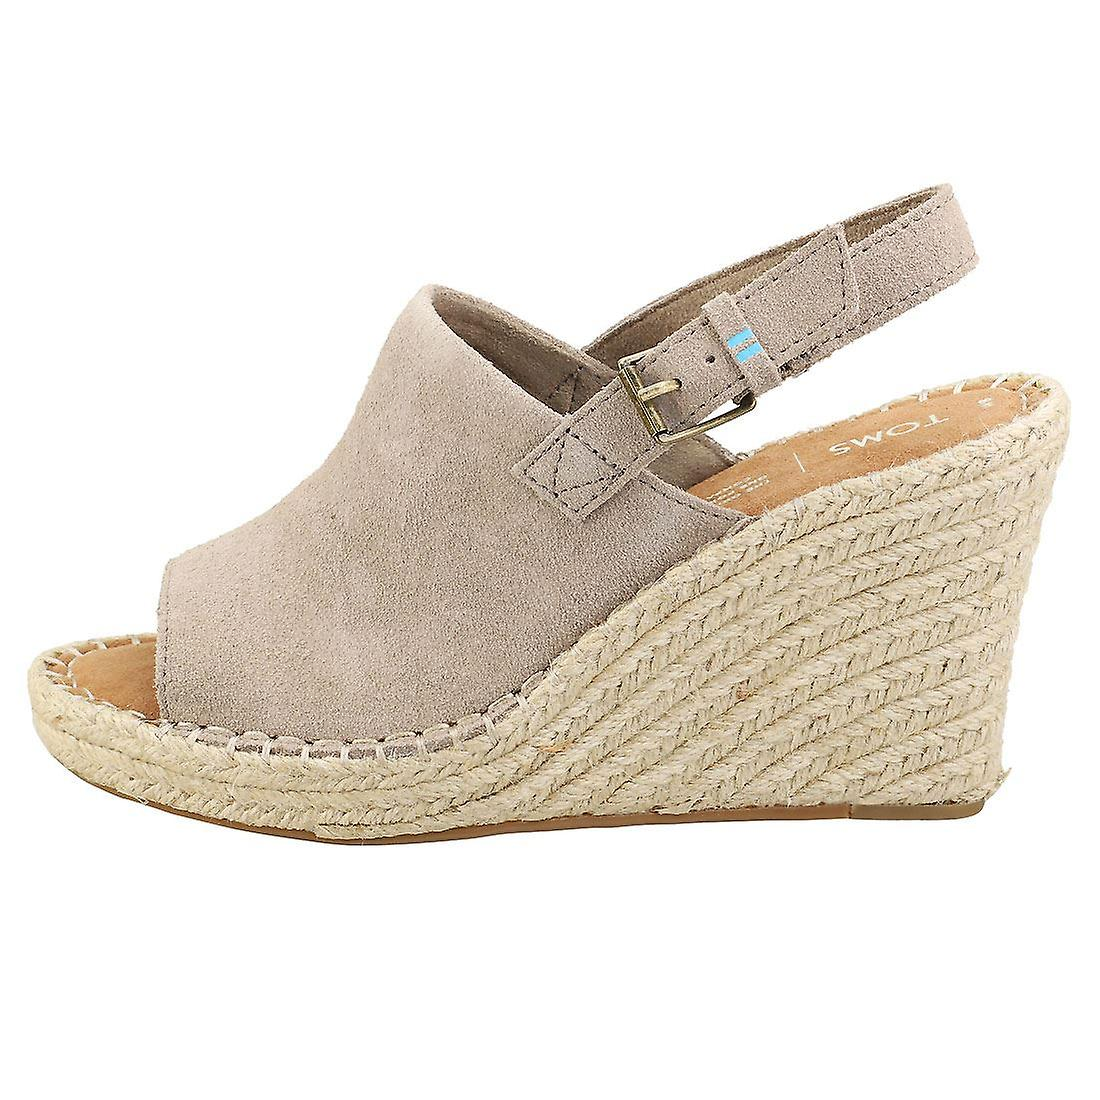 Toms Monica Womens Wedge Sandals in Taupe